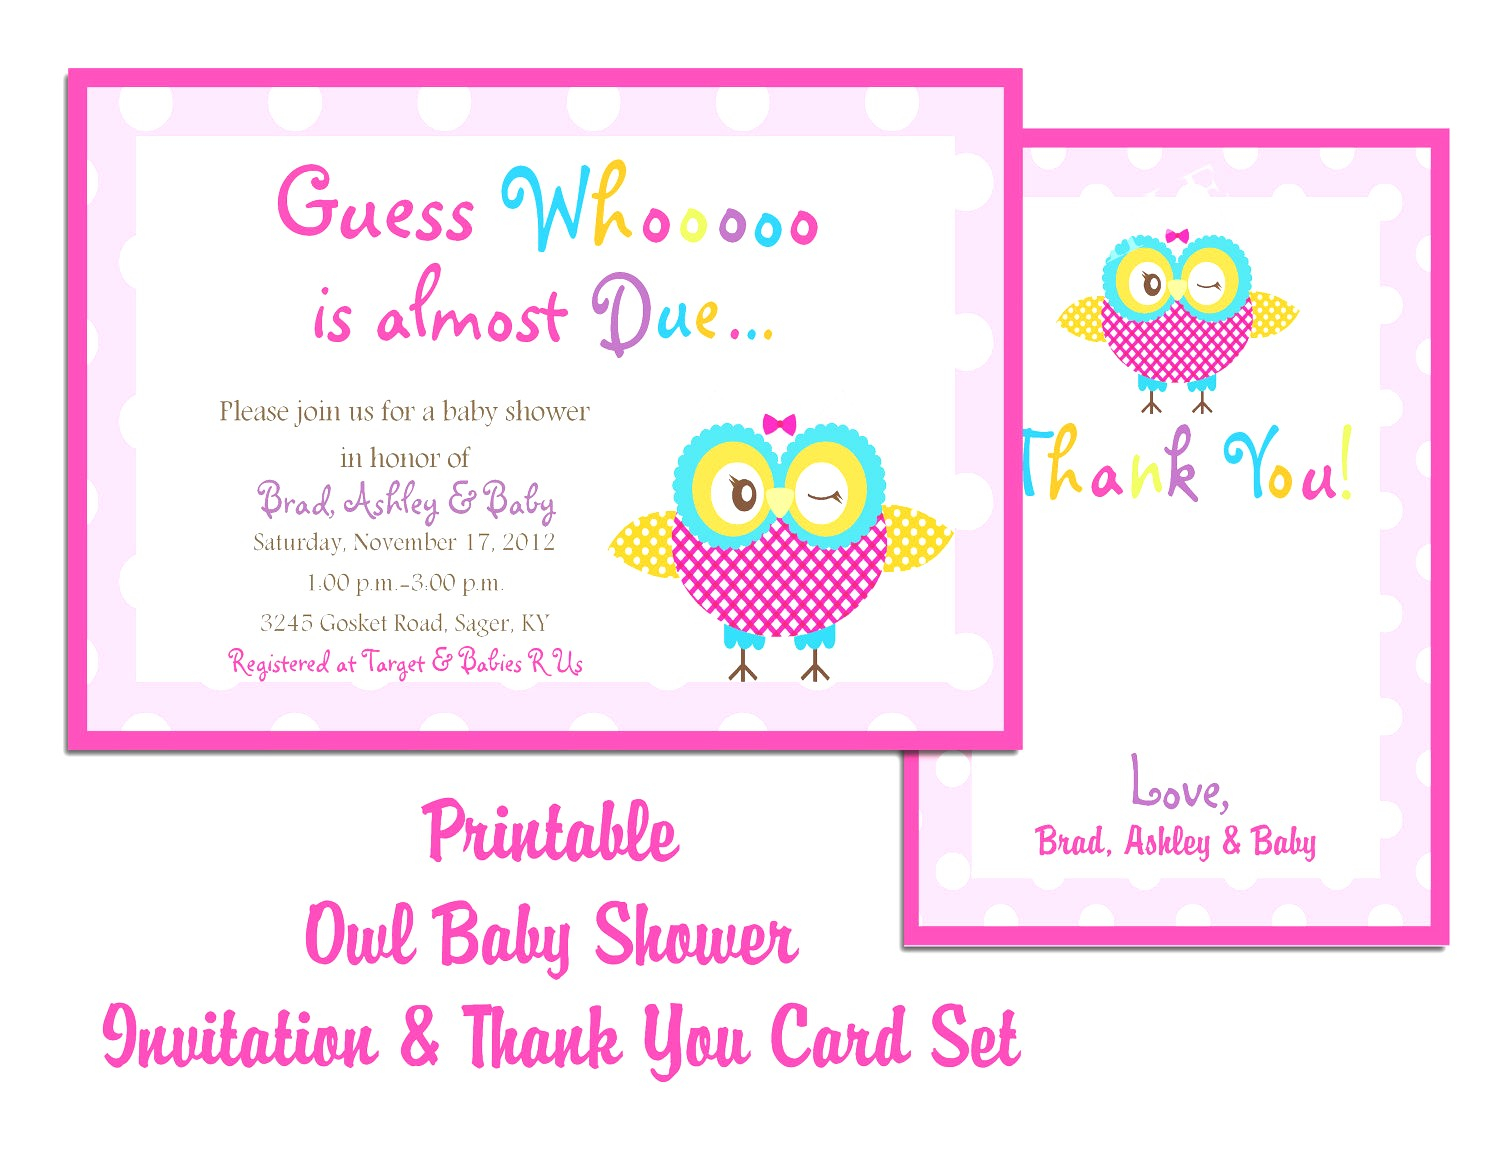 Full Size of Baby Shower:sturdy Baby Shower Invitation Template Image Concepts Baby Shower List With Baby Shower Party Themes Plus Unique Baby Shower Games Together With Baby Shower Video As Well As Baby Shower Host And Adornos Para Baby Shower